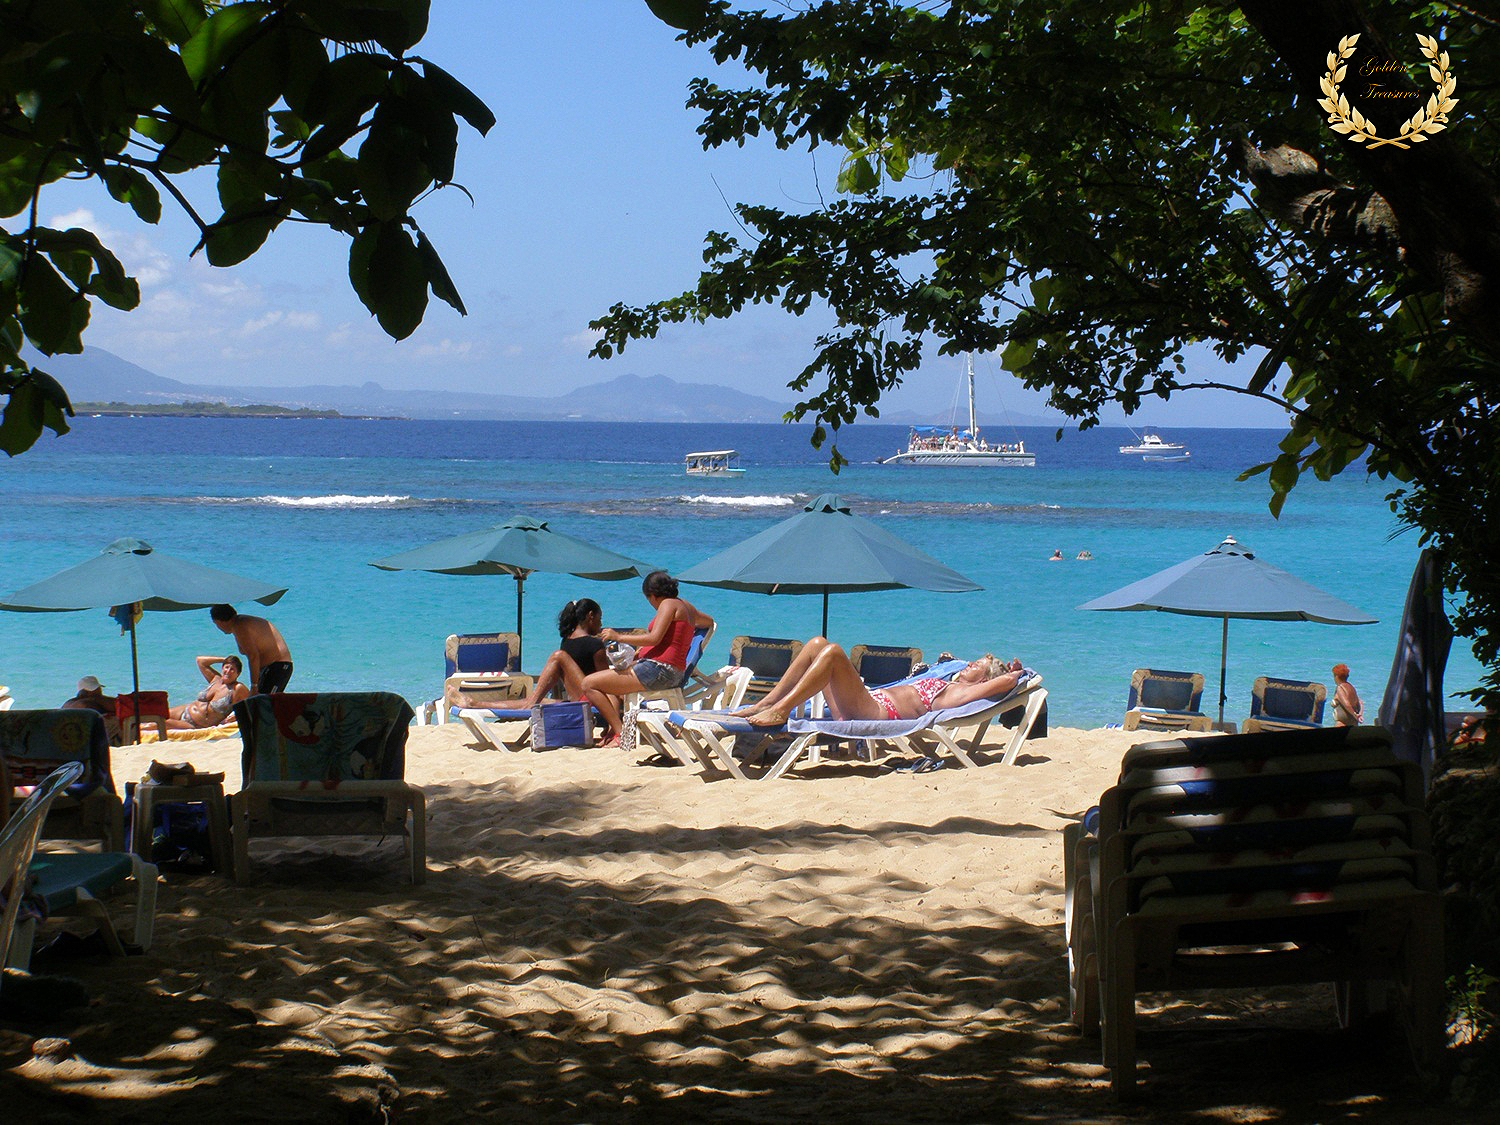 Tourists Sprawl In Chaise Lounges At Sosua Beach On A Sunday Afternoon